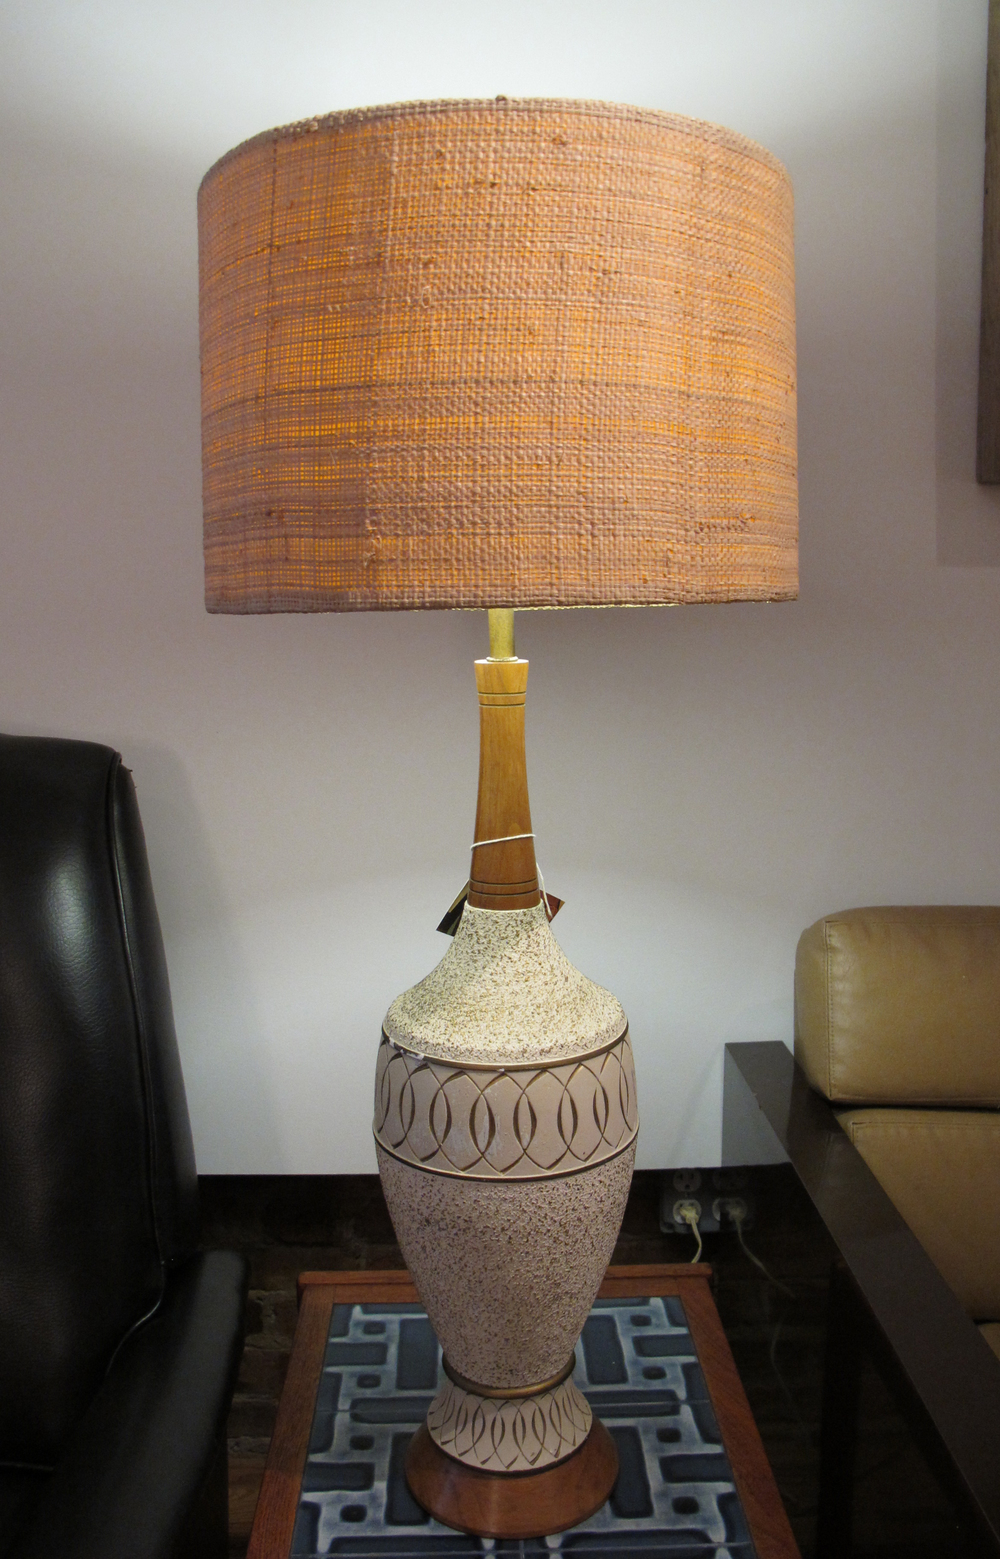 MID CENTURY CERAMIC & WOOD LAMP WITH BURLAP SHADE BY FAIP